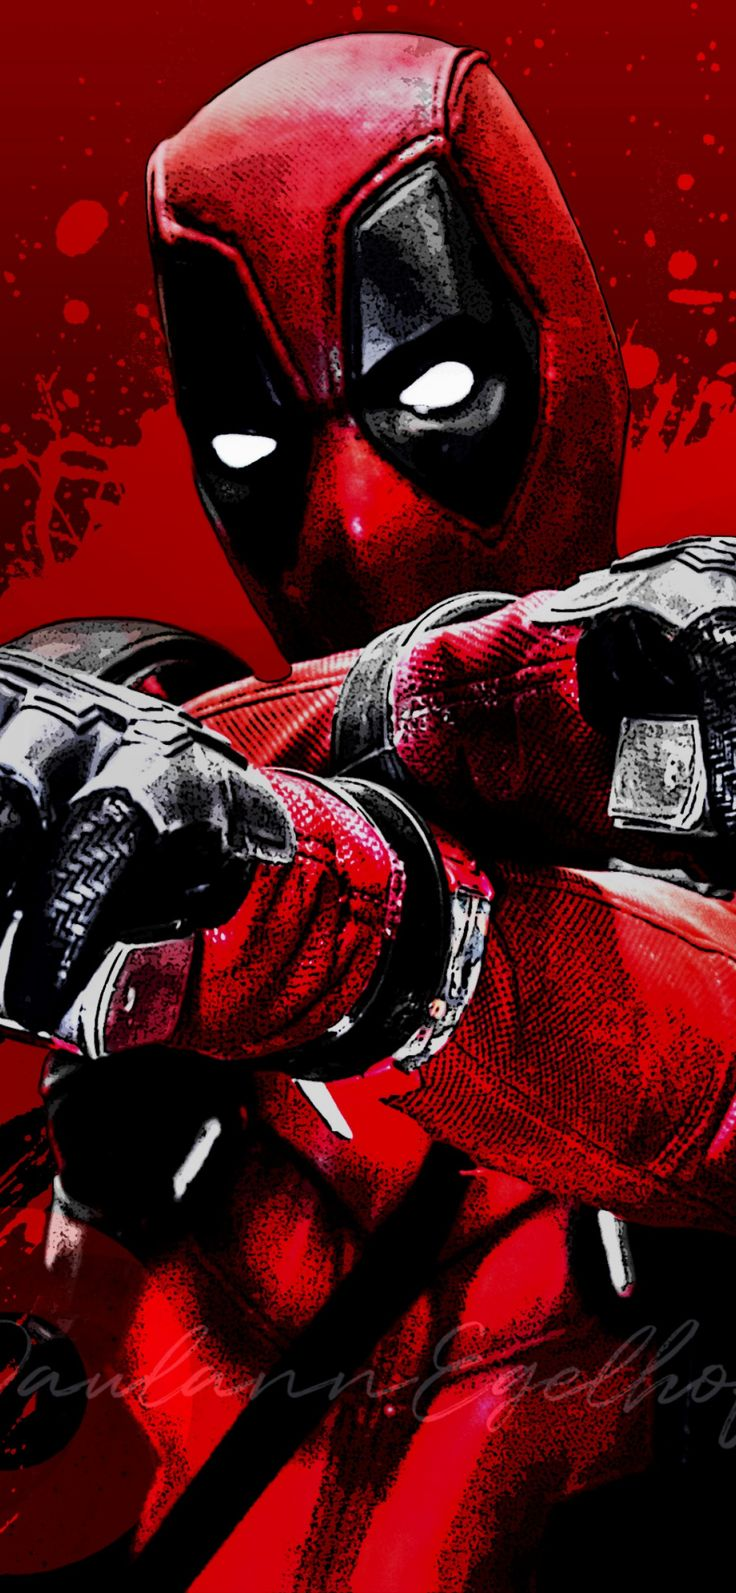 1125x2436 Fictional Character, Superhero Movie, Deadpool